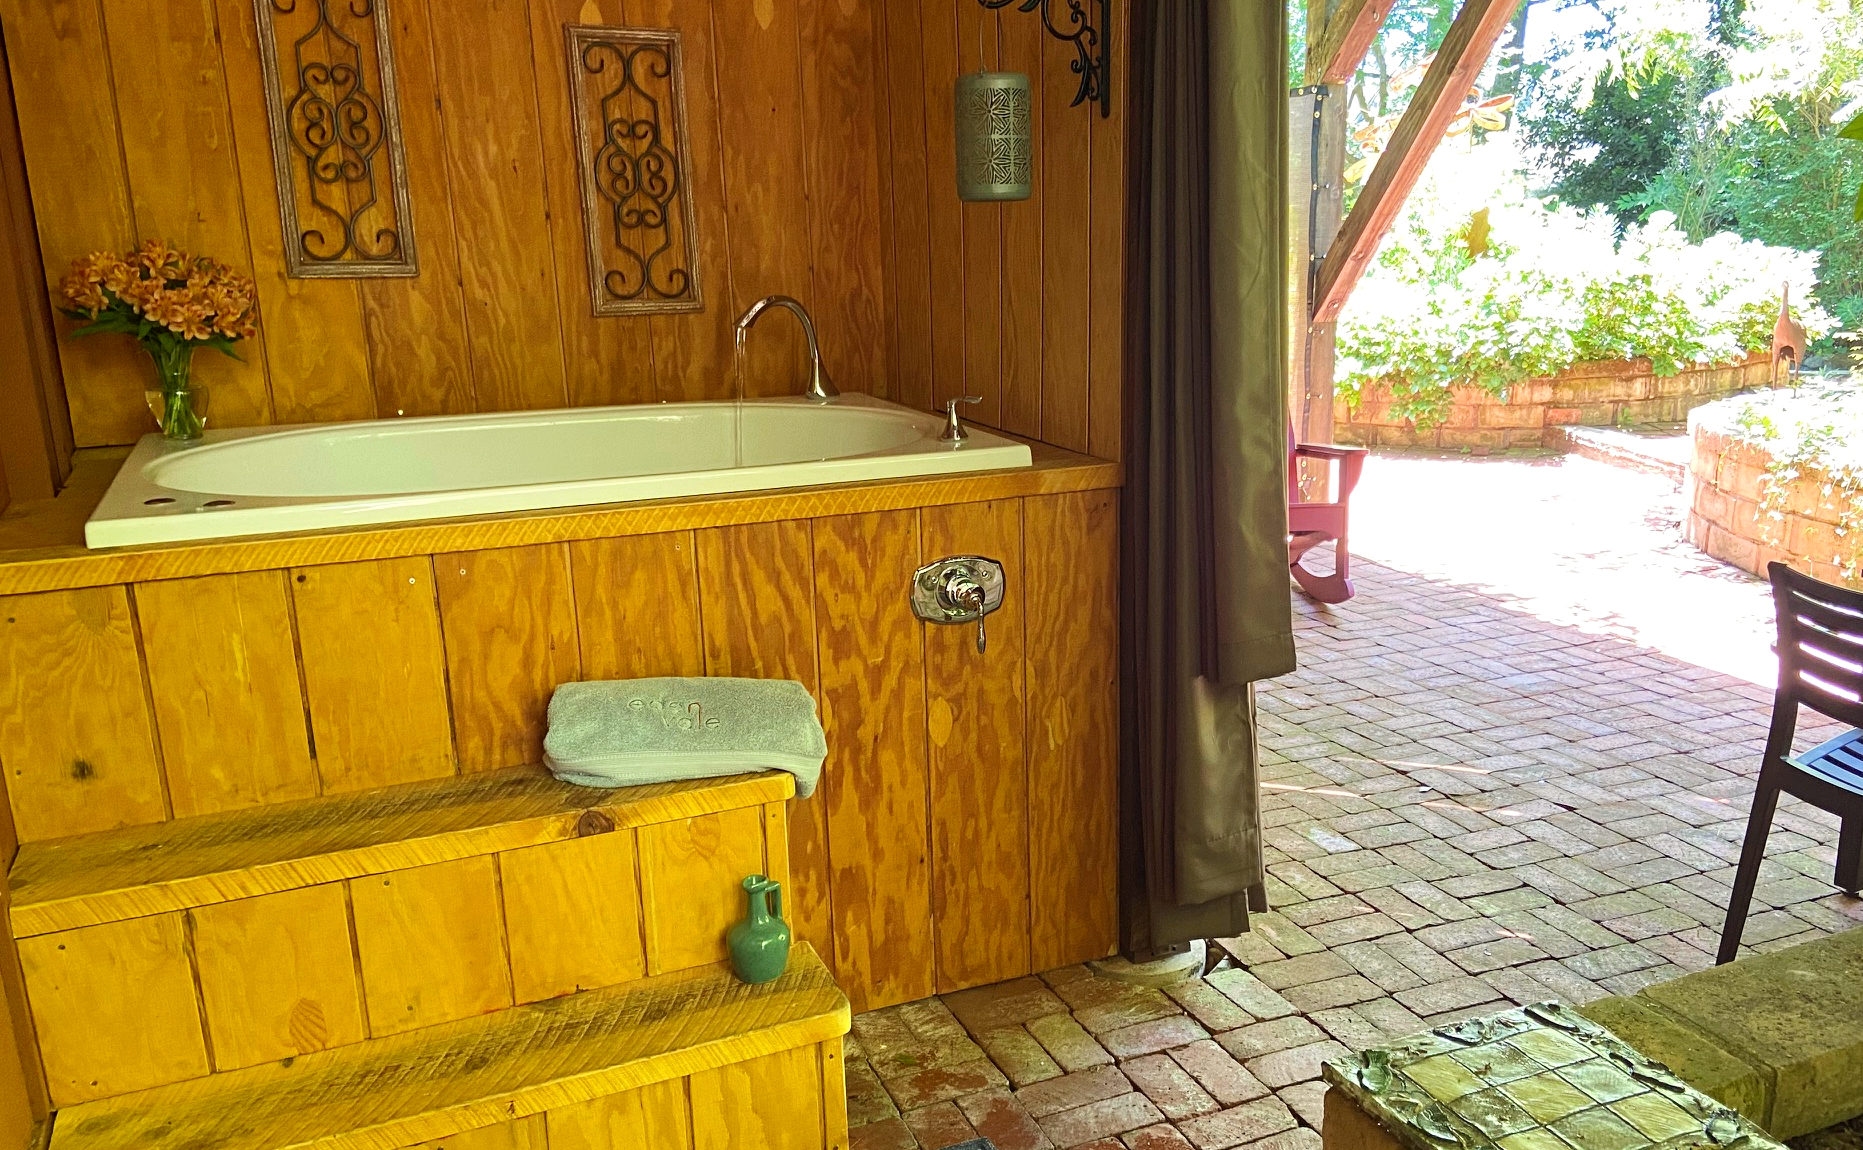 Private outdoor soaking tub on the patio